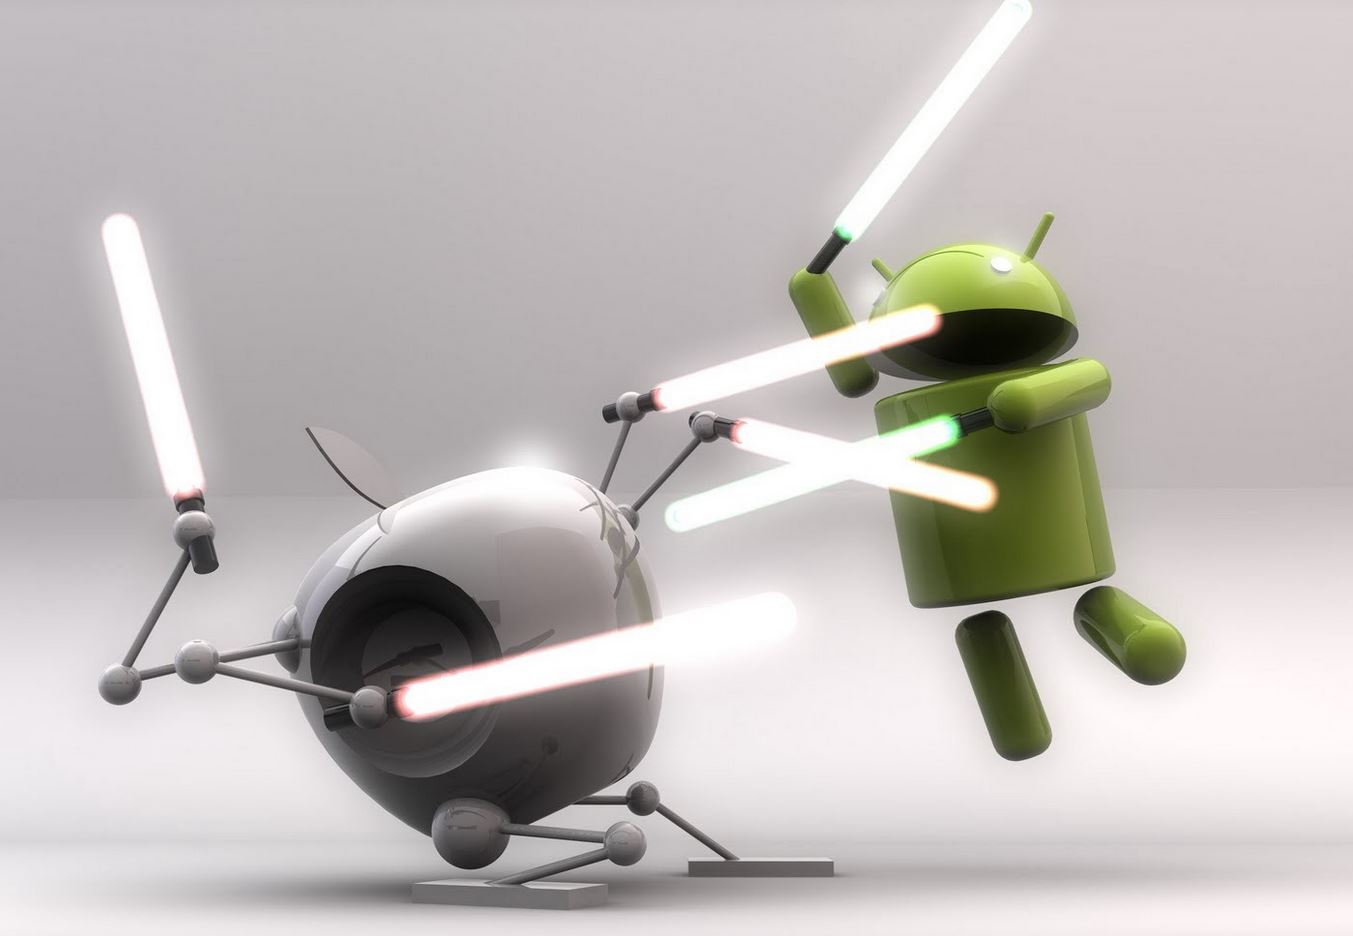 Aussies switching to Android